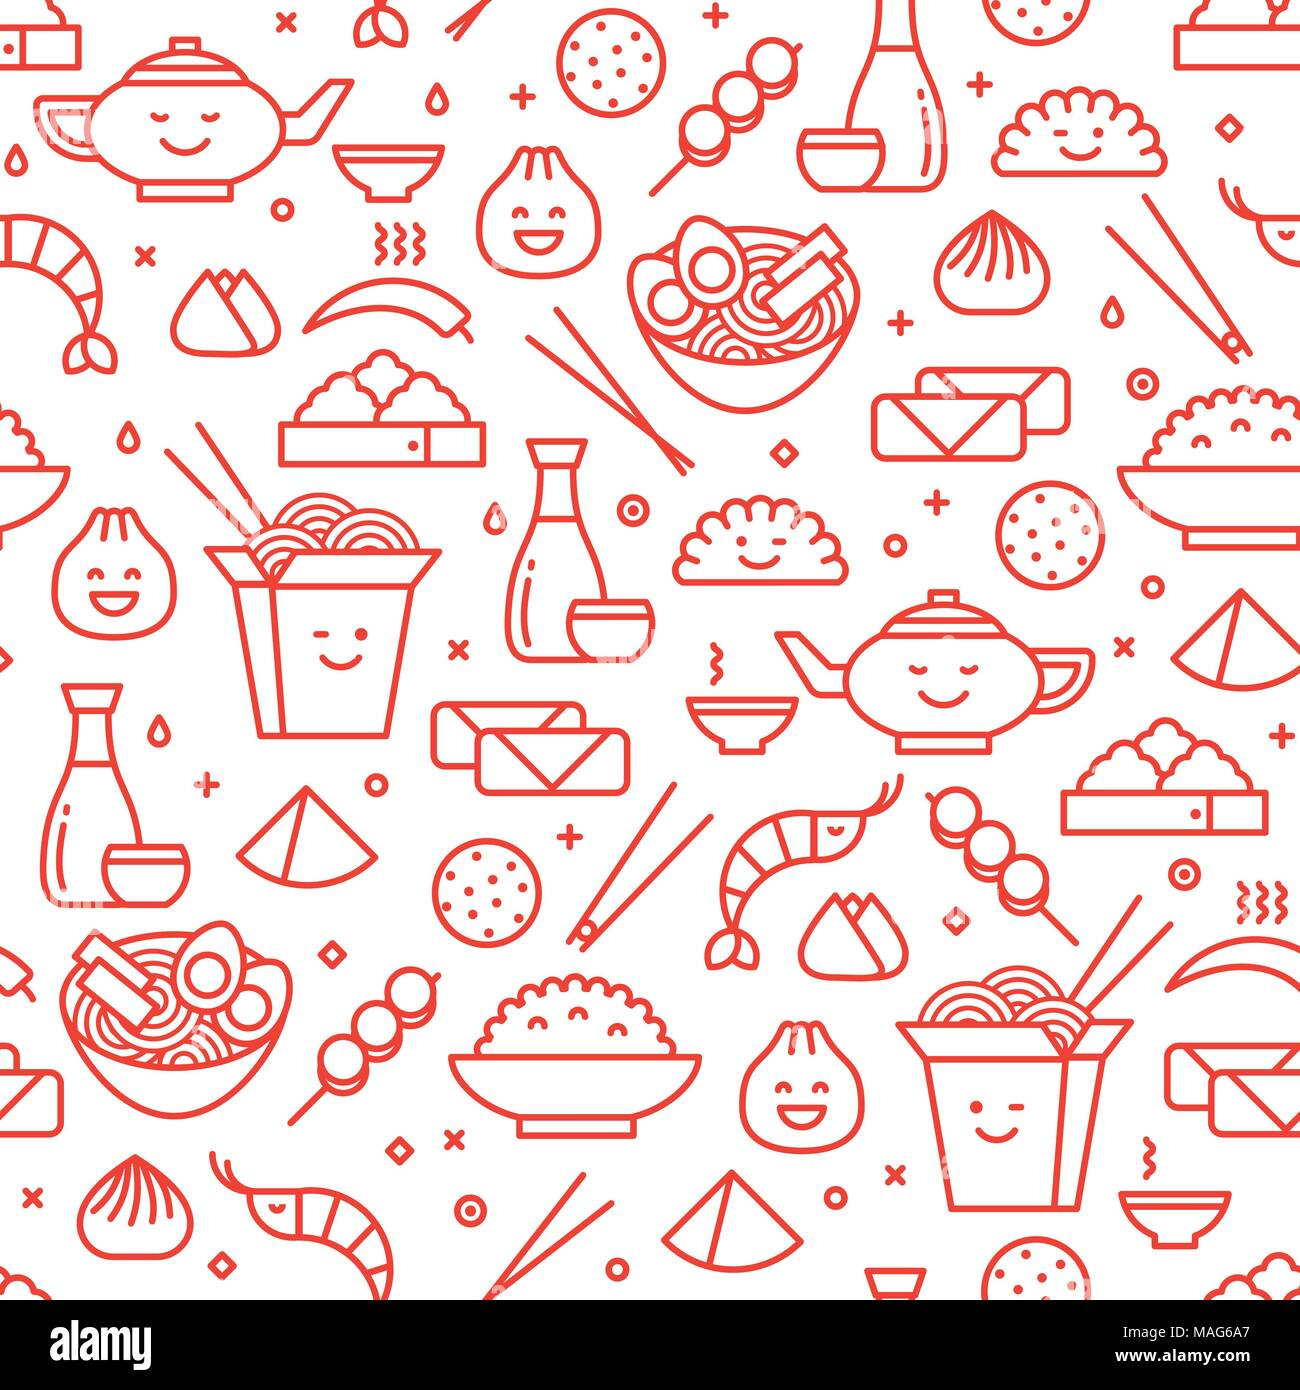 Vector line art seamless pattern of Chinese cuisine in outlined icons. Traditional food of different provinces of China take out boxes, noodles, dim - Stock Vector